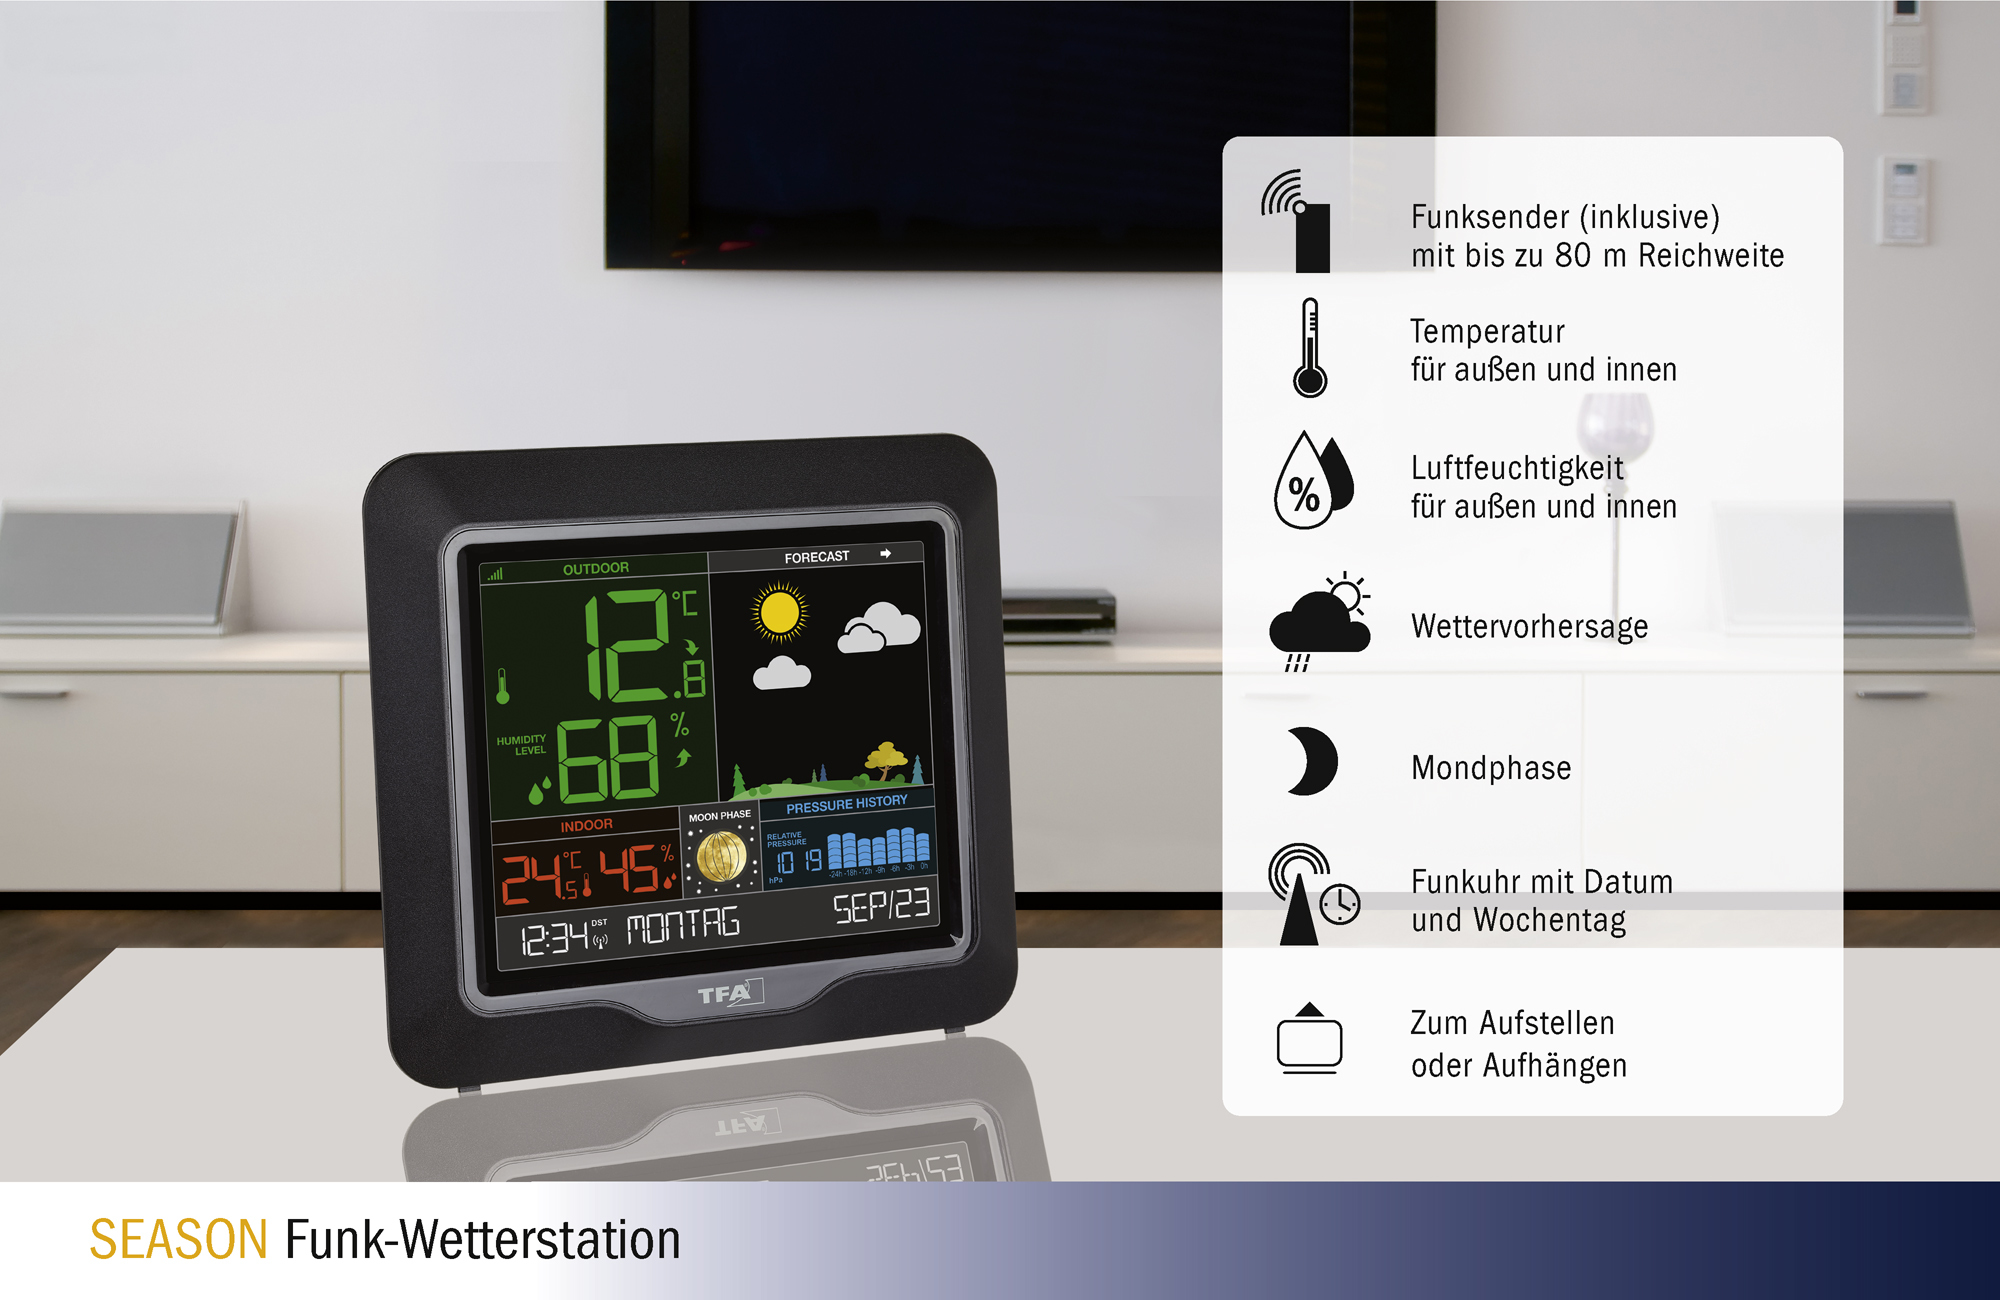 Season_Funk-Wetterstation_35115001_Icons.jpg